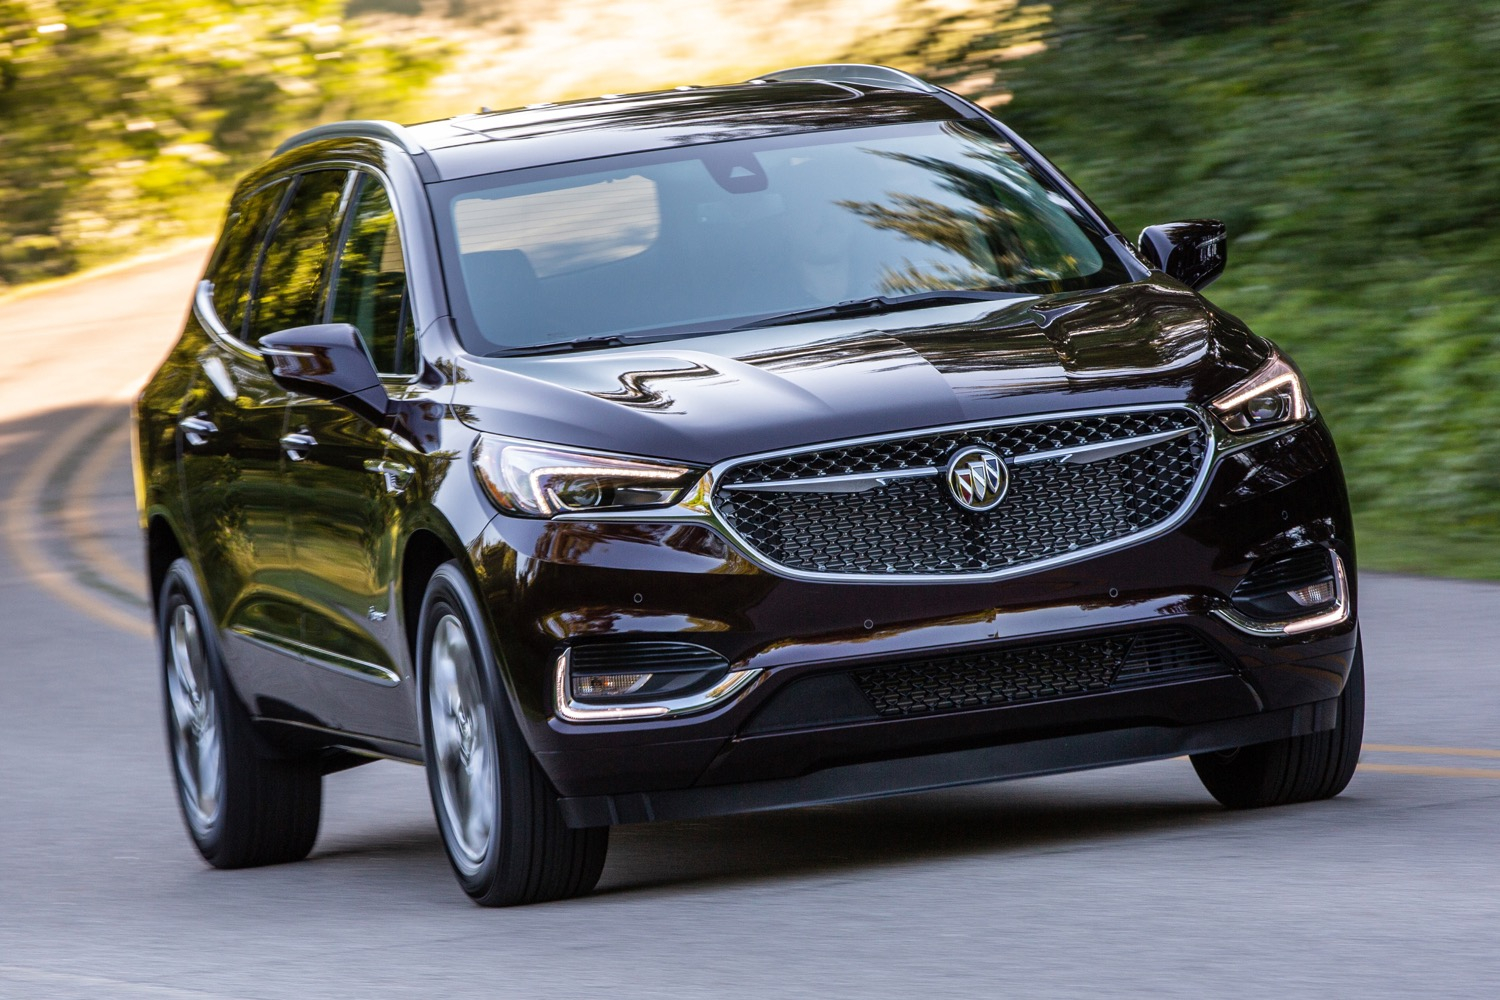 All The Changes Made To The 2020 Buick Enclave | Gm Authority 2021 Buick Enclave Engine, Navigation, Navigation System